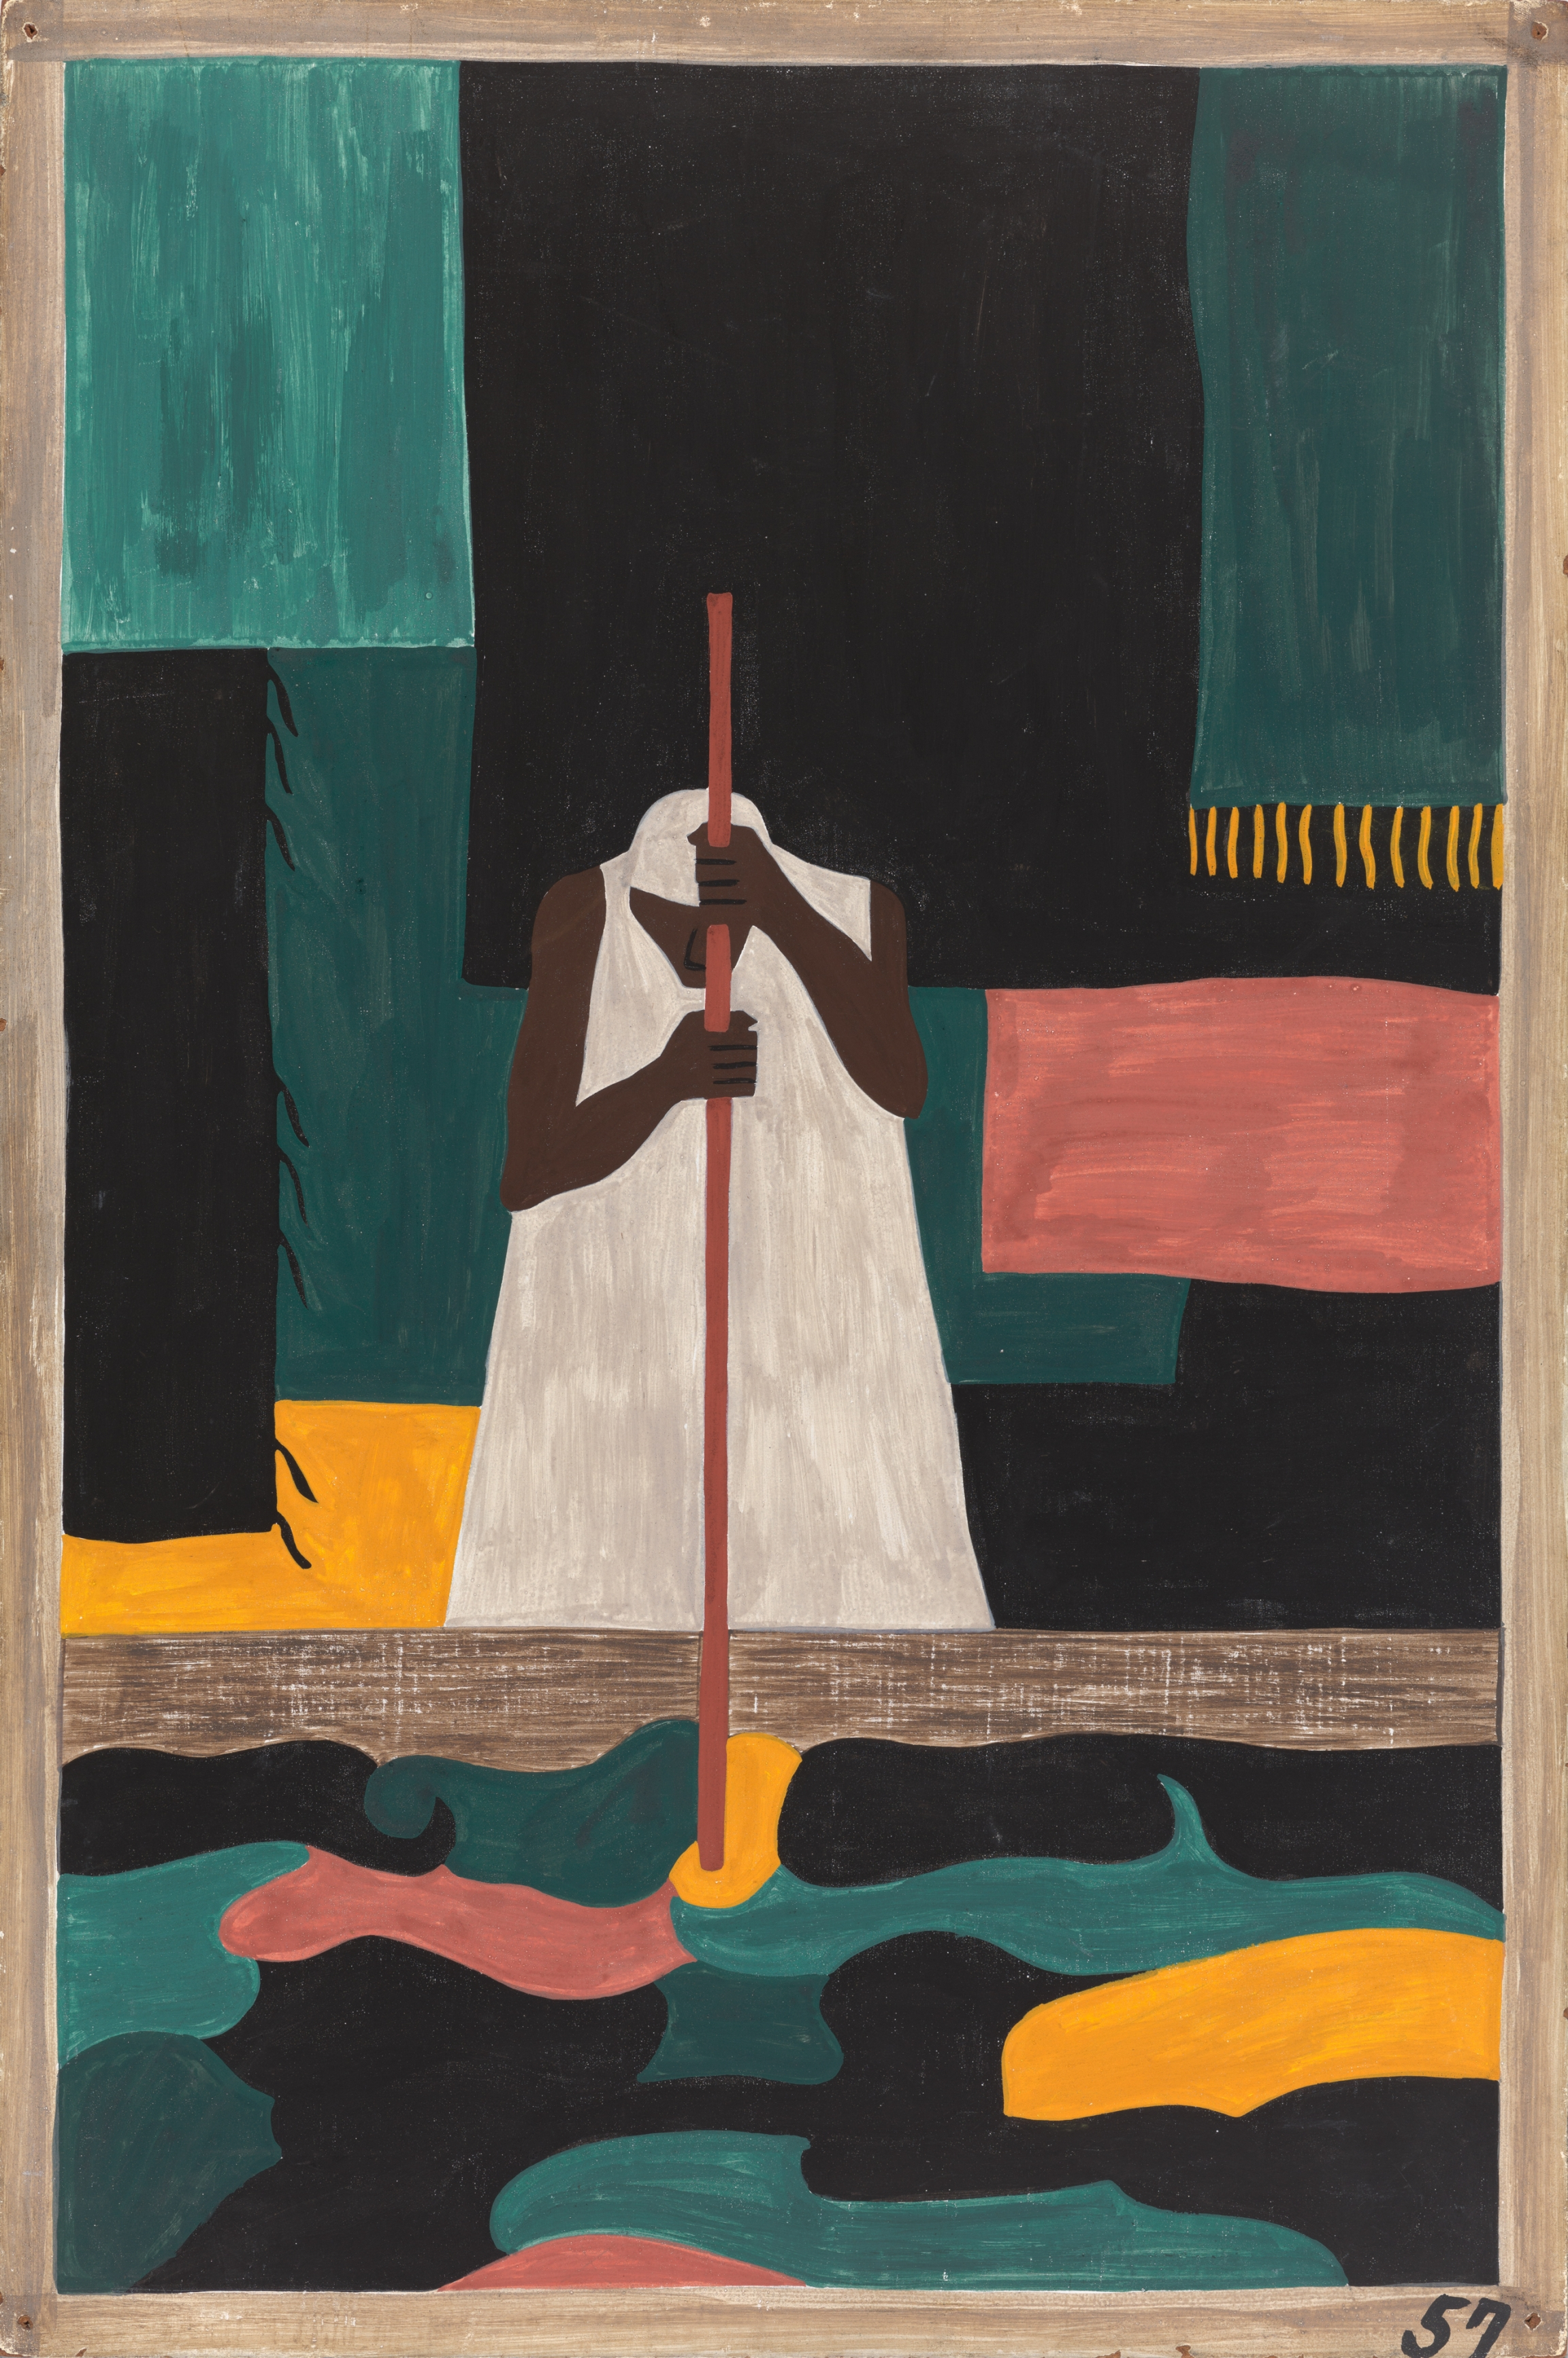 """Jacob Lawrence, """"The Migration Series, Panel no. 57: The female workers were the last to arrive north.,"""" 1940–41. Casein tempera on hardboard, 12 x 18 in."""